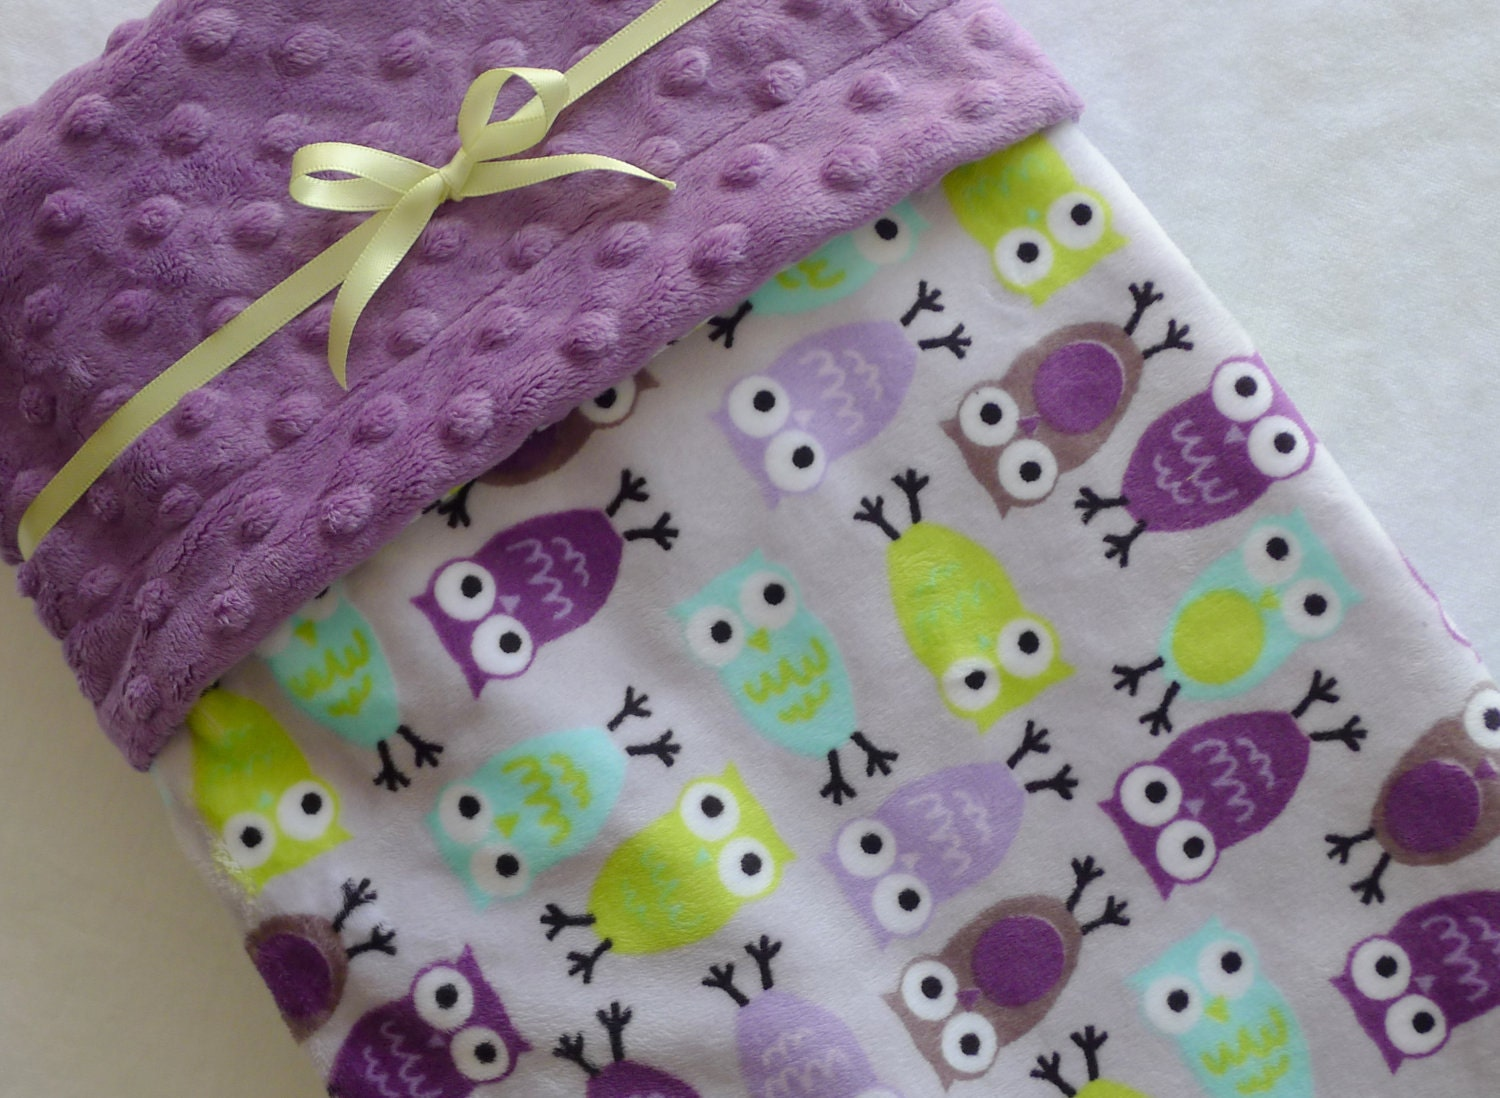 Shop forShop forowl baby blanketonShop forShop forowl baby blanketonEtsy, the place to express your creativity through the buying and selling of handmade and vintage goods.